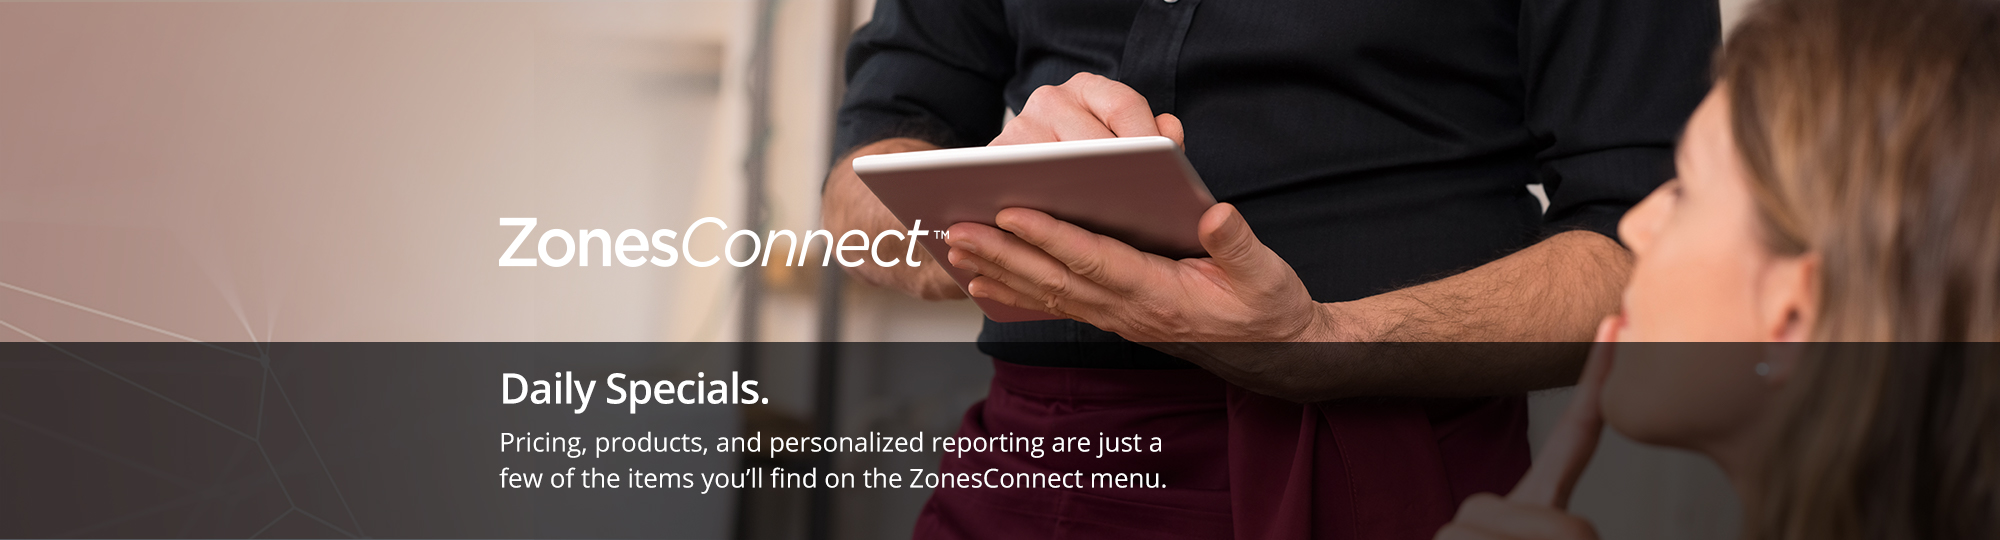 Daily Specials. Pricing, products, and personalized reporting are just a few of the items you?ll find on the ZonesConnect menu.